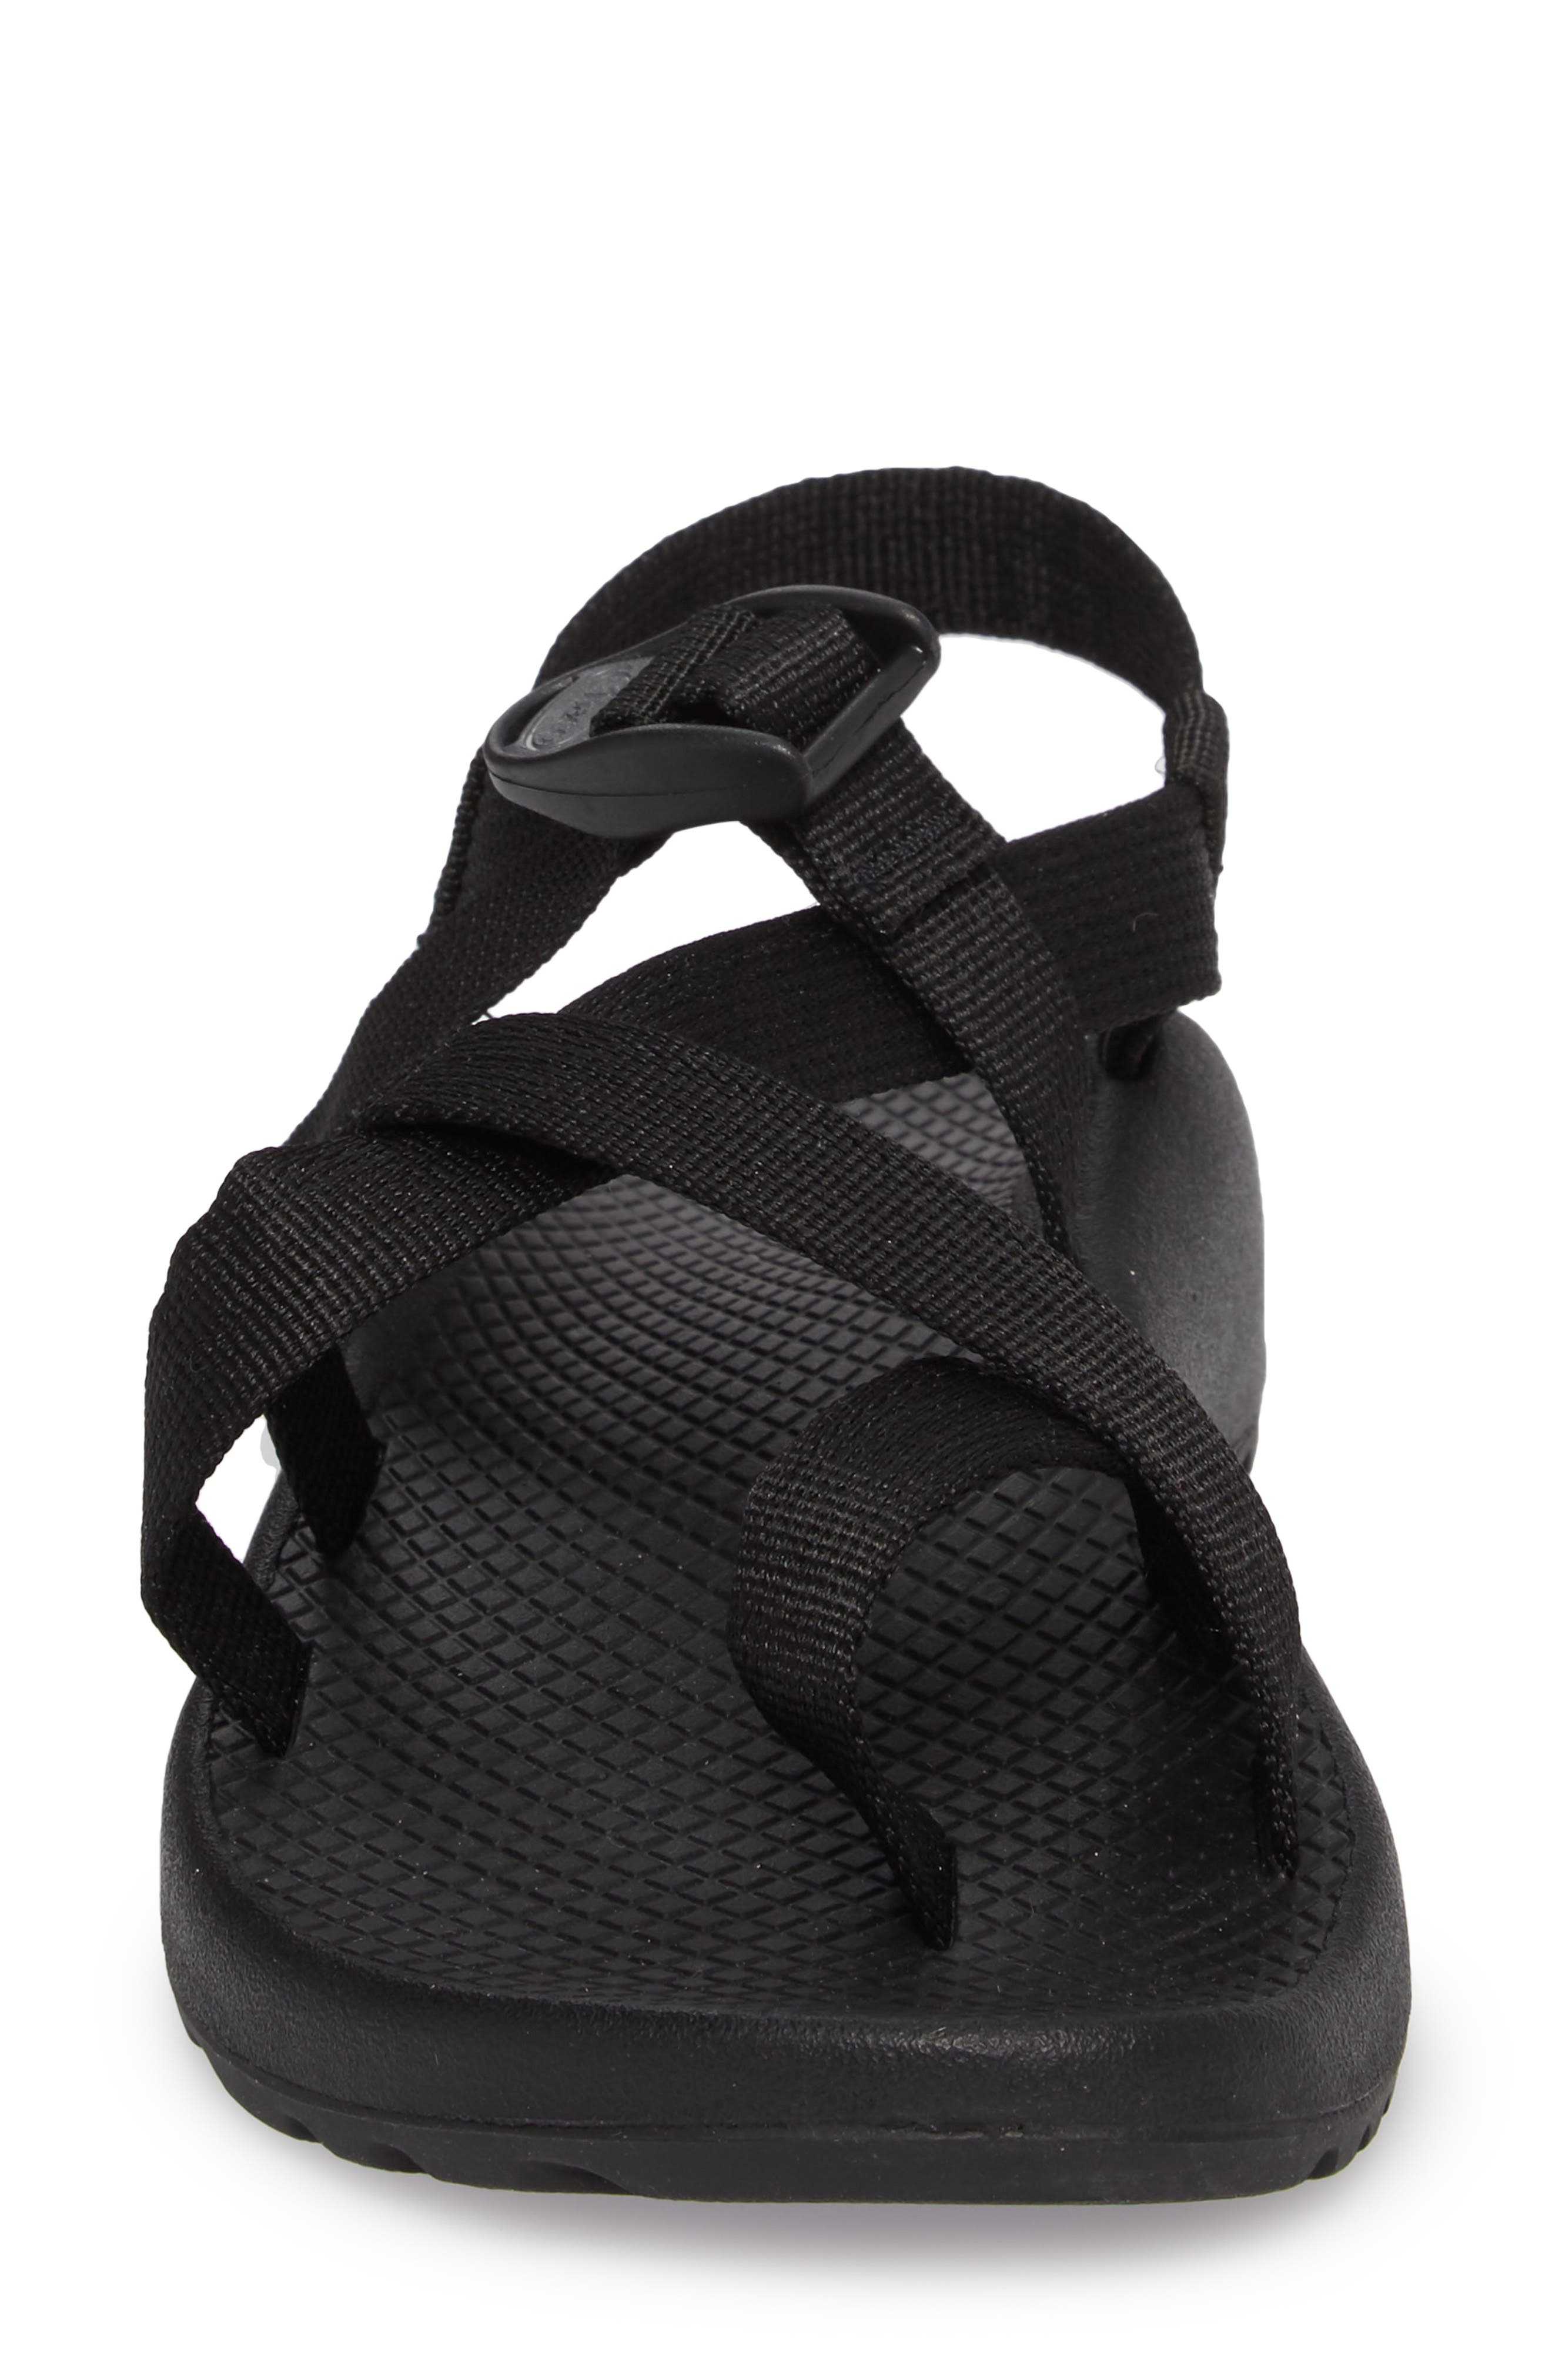 Z/2 Classic Sport Sandal,                             Alternate thumbnail 4, color,                             Black